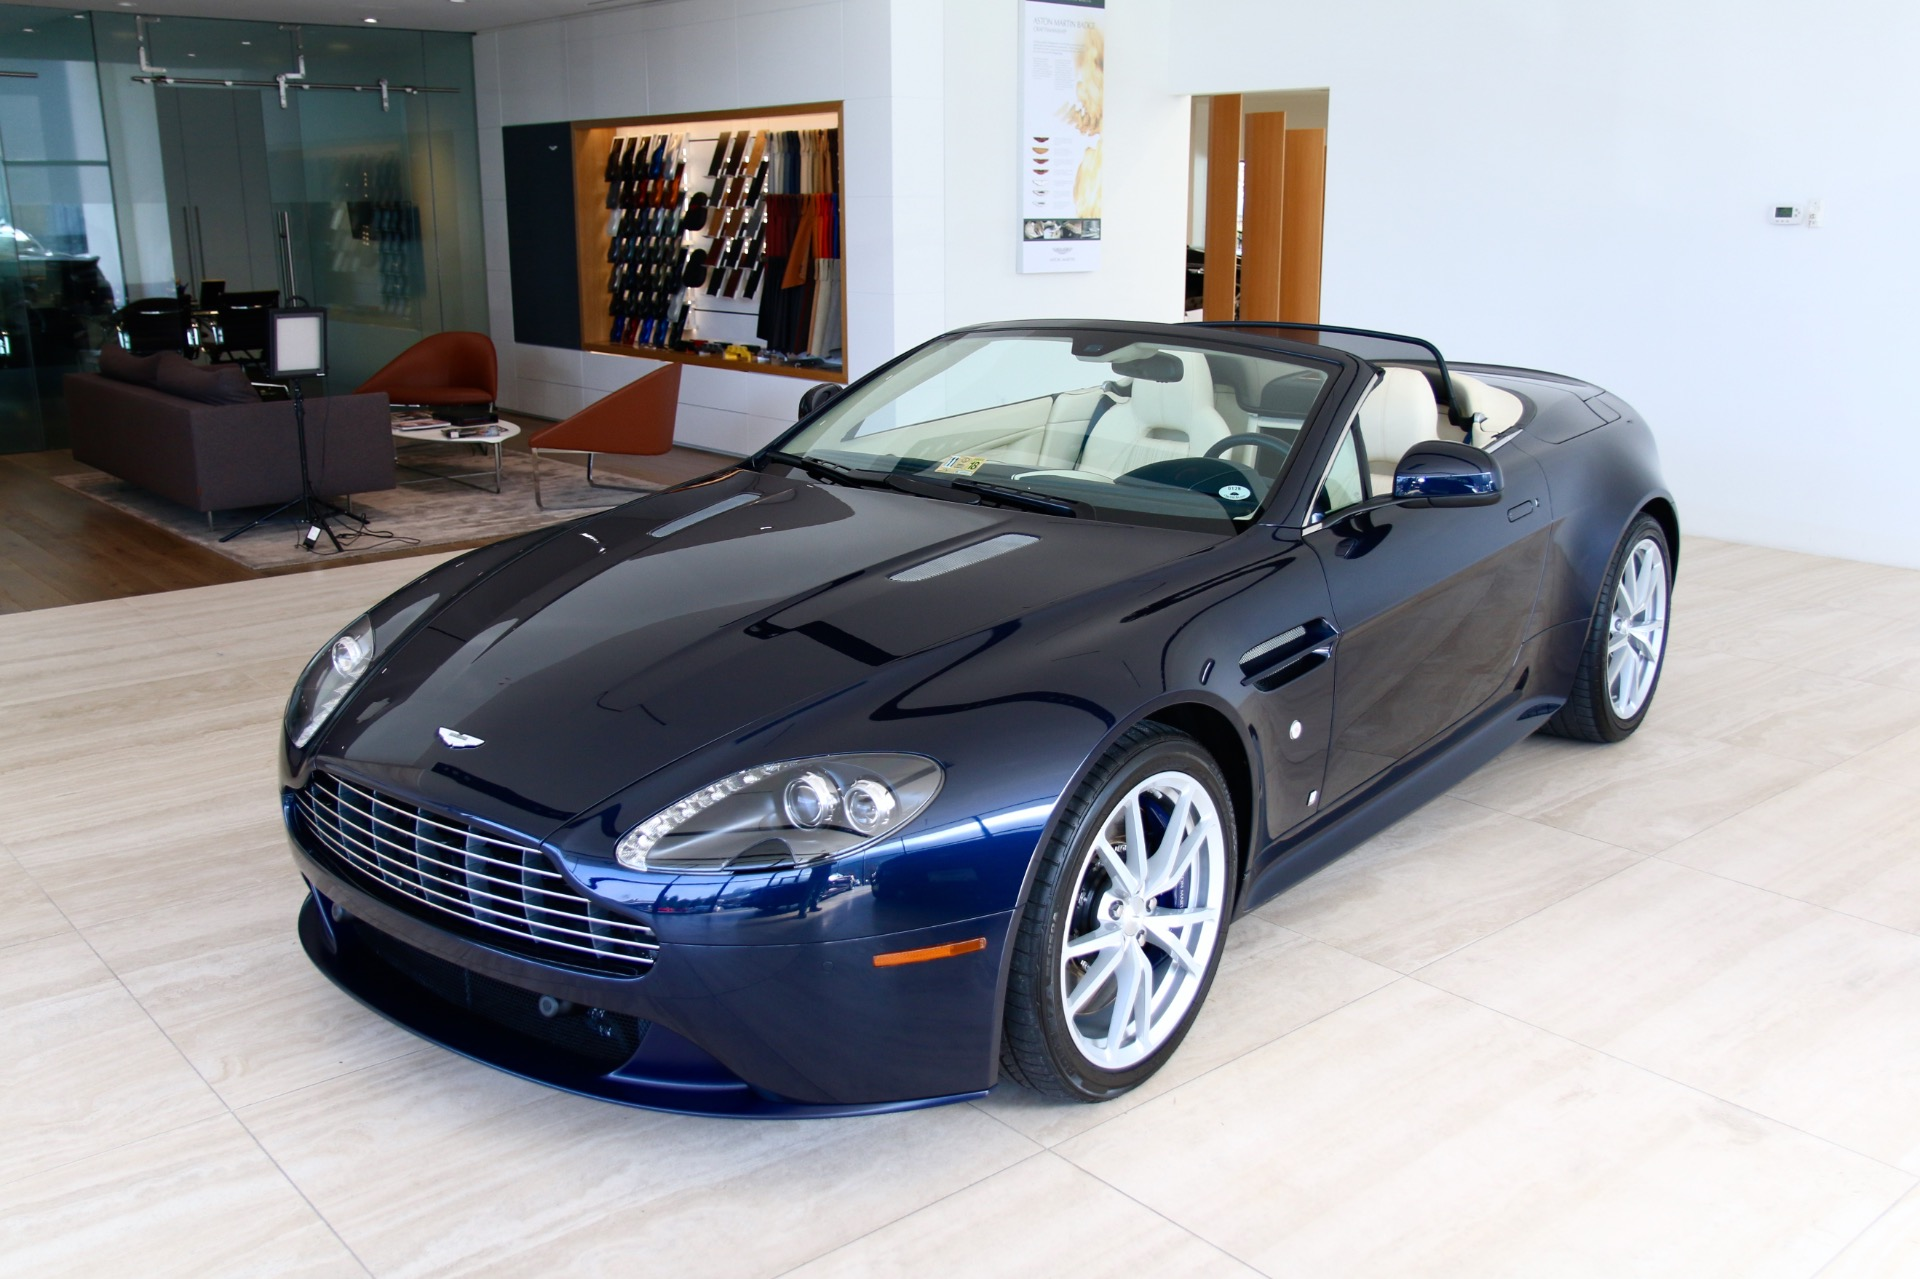 2015 aston martin v8 vantage s roadster s roadster stock pd18927 for sale near vienna va va. Black Bedroom Furniture Sets. Home Design Ideas